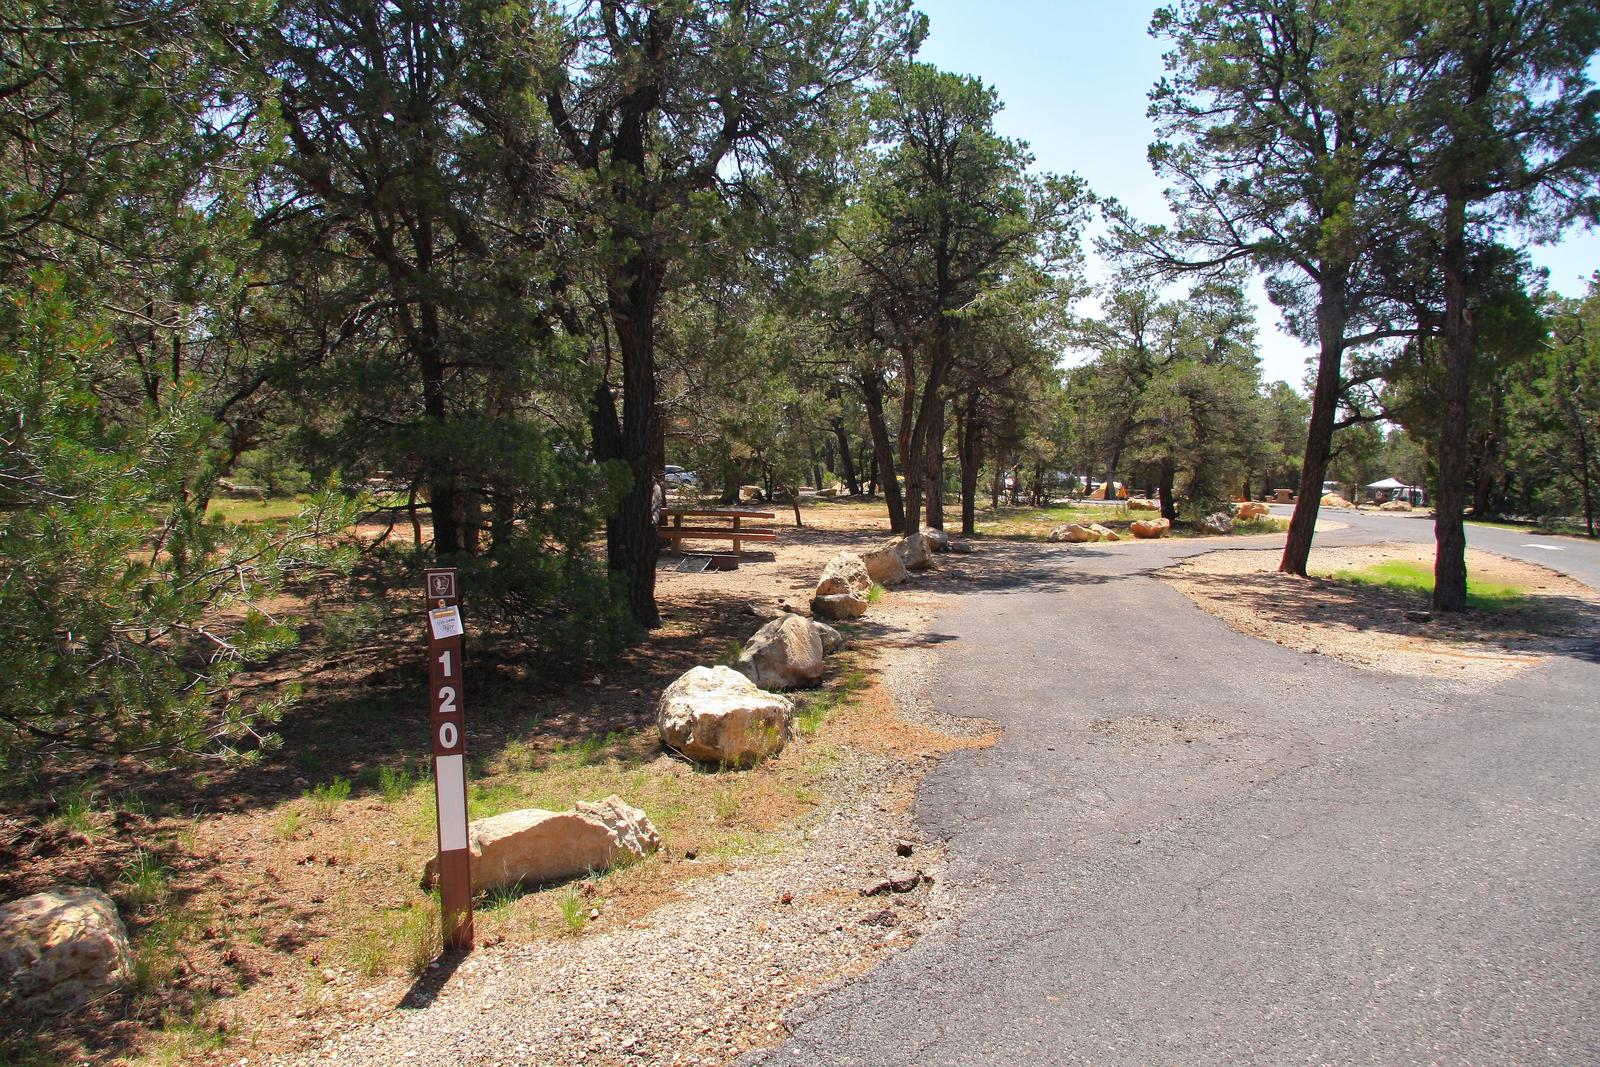 Picnic table, fire pit, and parking spot, Mather CampgroundPicnic table, fire pit, and parking spot for Juniper Loop 120, Mather Campground